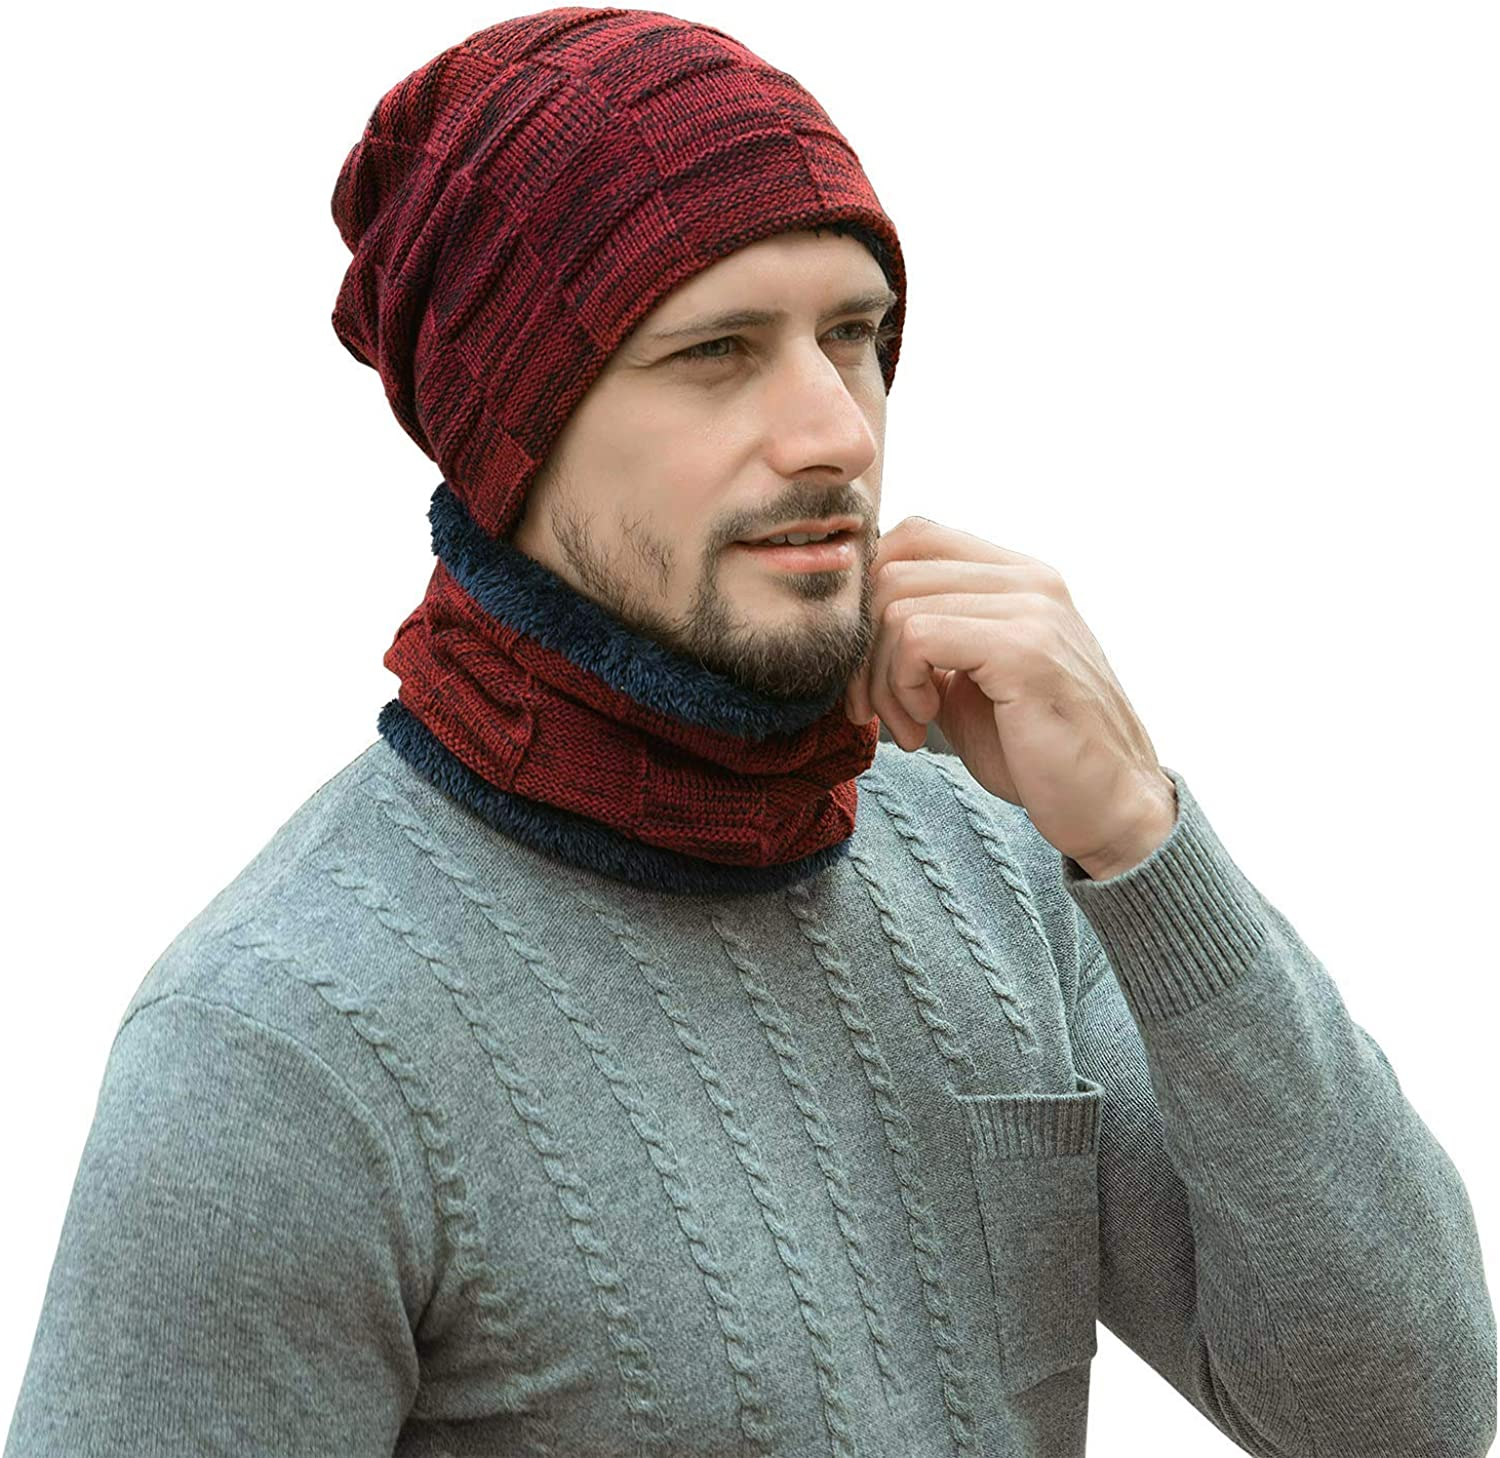 Leijos 2-Pieces Winter Beanie Hat Scarf Set Warm Knit Hat Thick Fleece Lined Winter Hat /& Scarf for Men Women